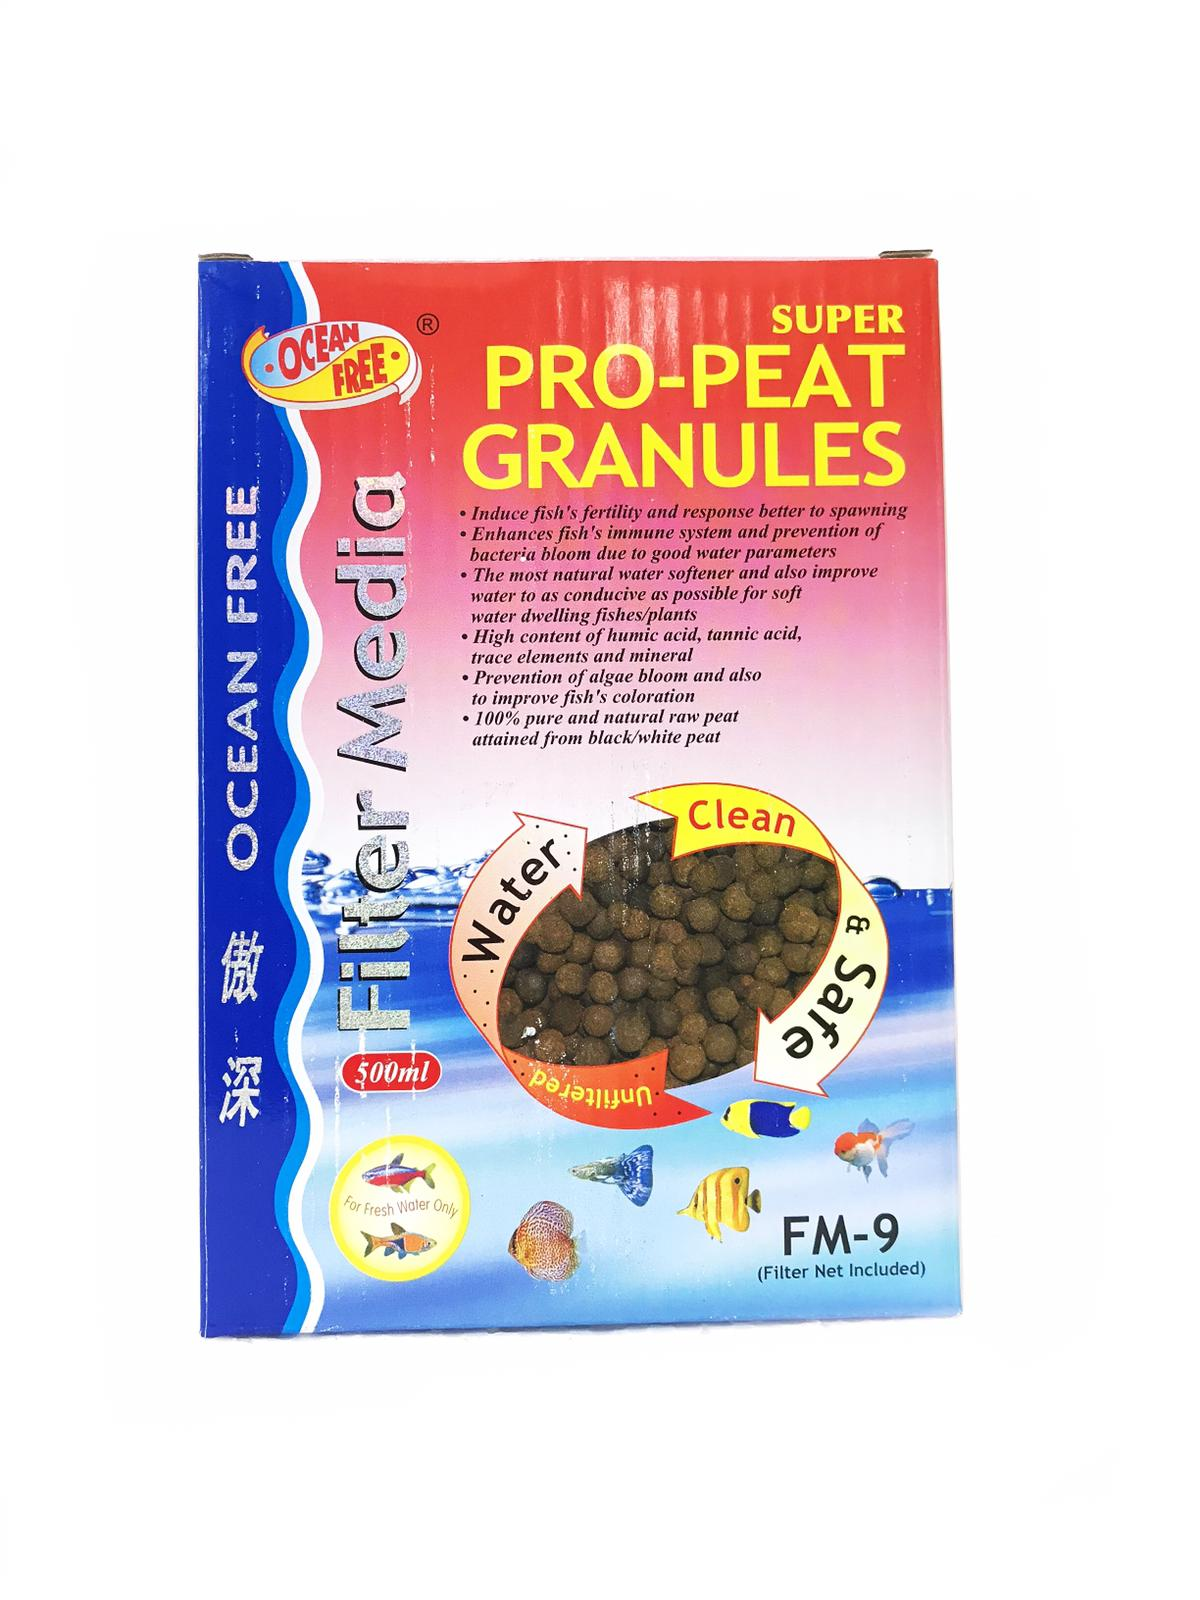 OF Super Pro-Peat Granules FM-9